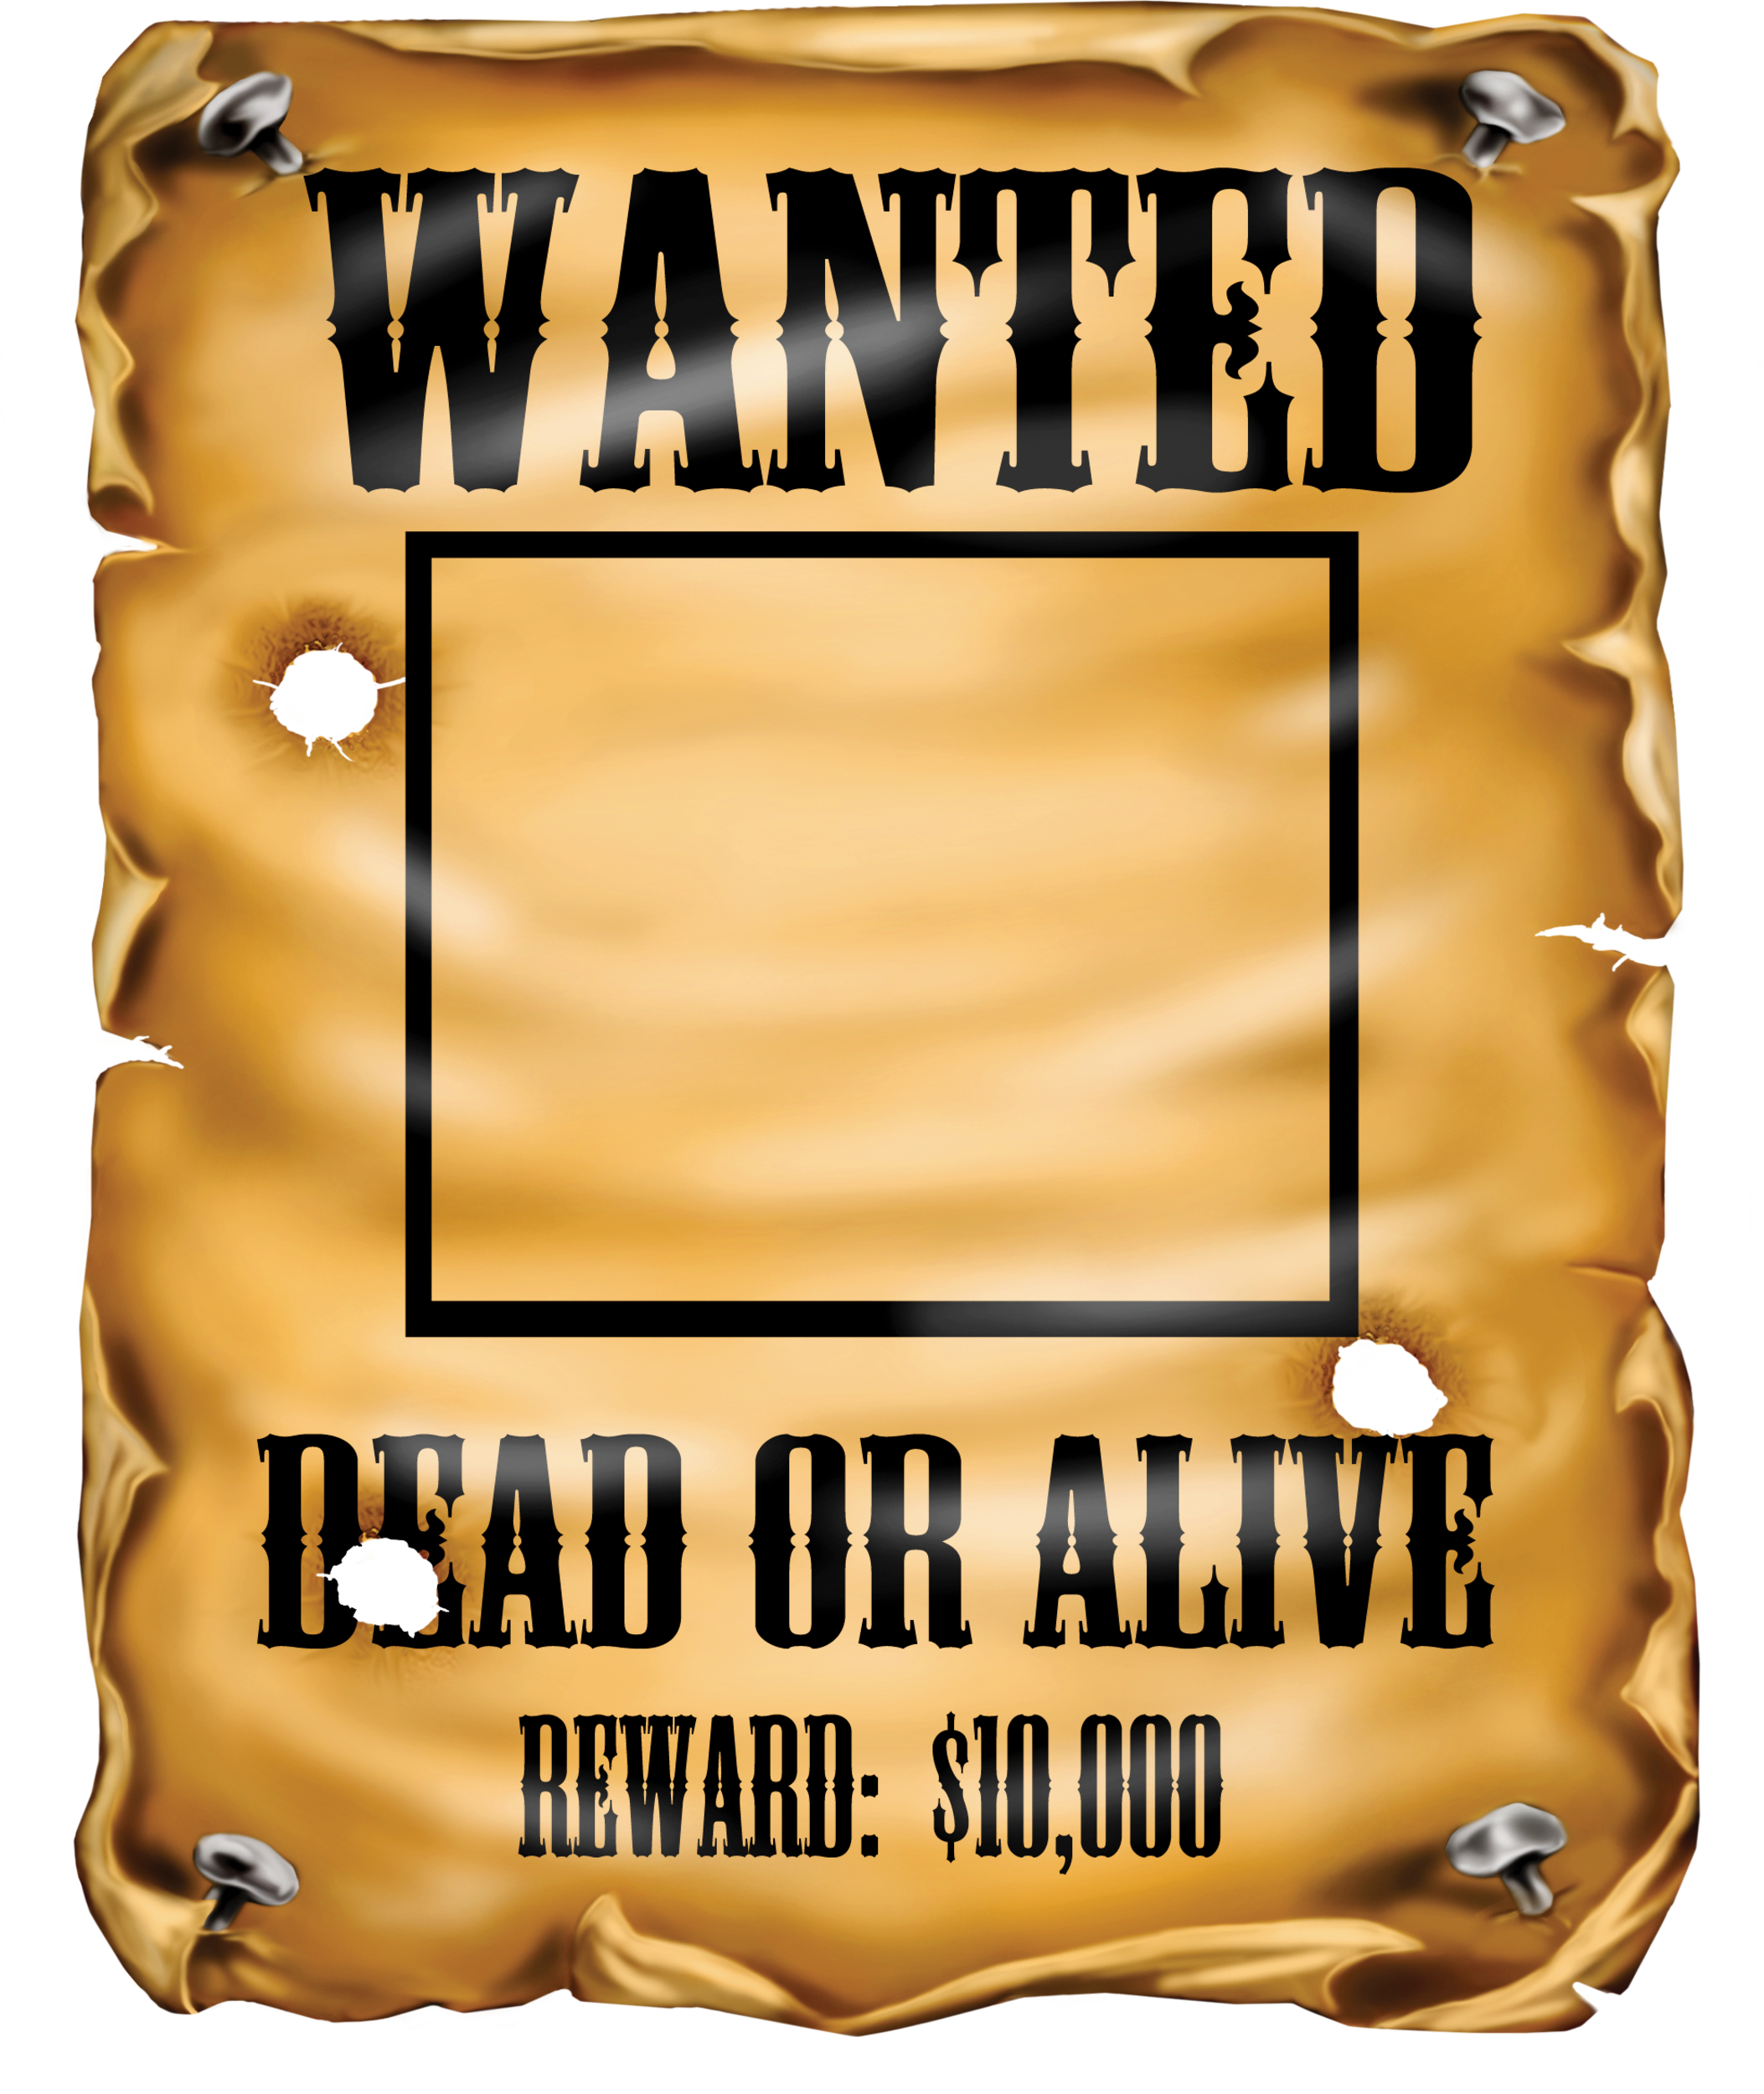 Most Wanted Sign Clipart - Clipart Kid